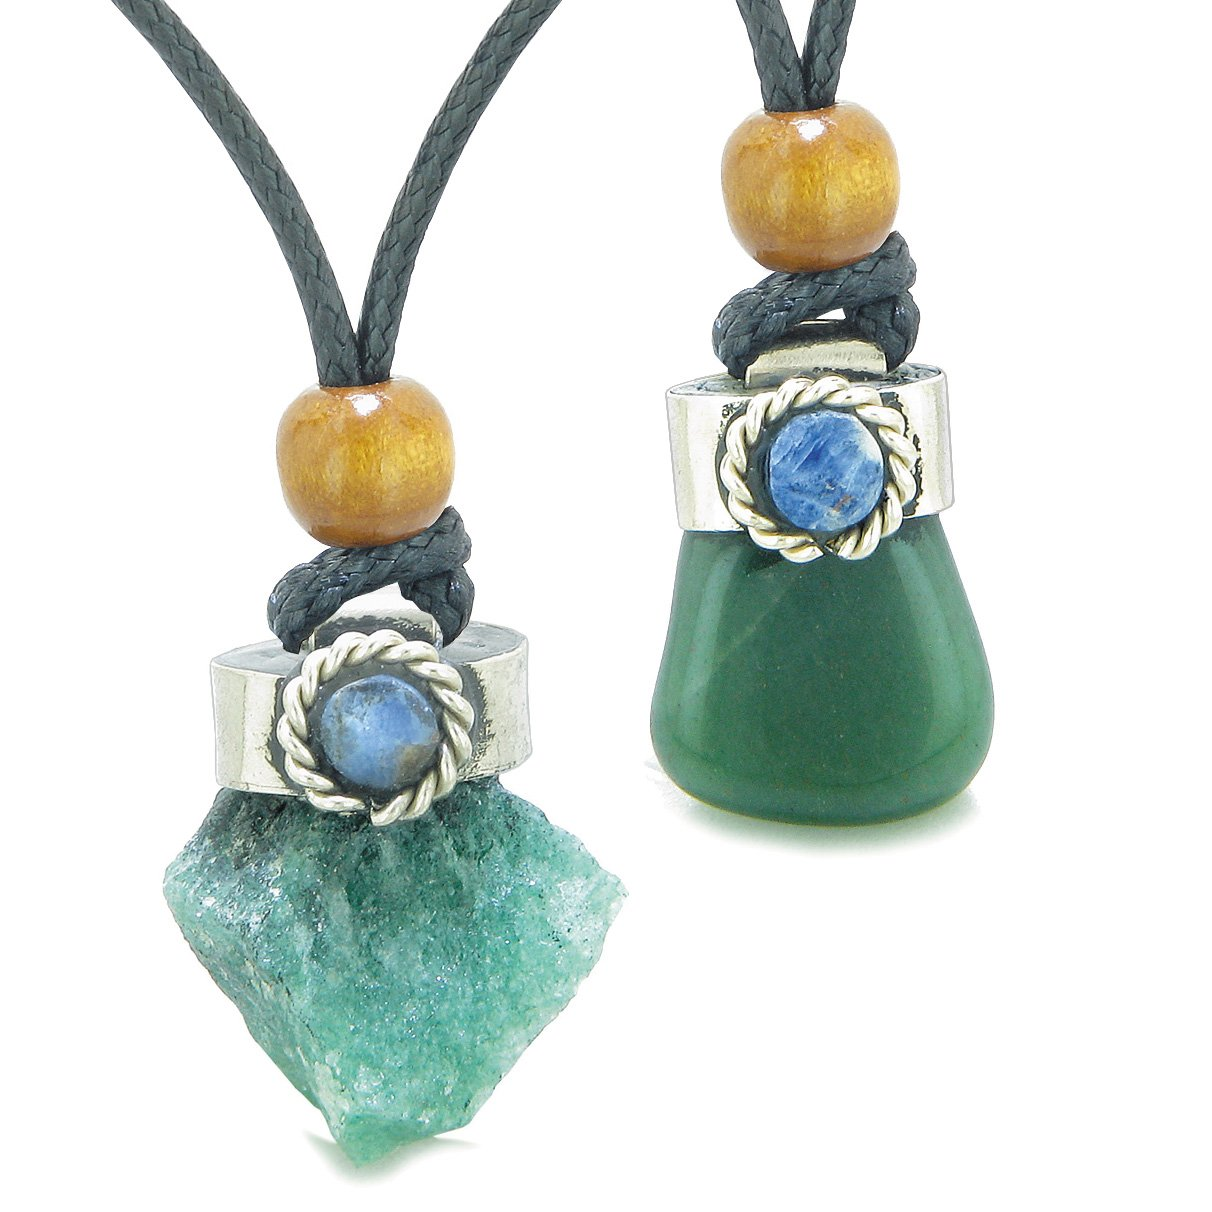 Healing Green Aventurine and Quartz Gemstone Love Couples and Best Friends Jewelry